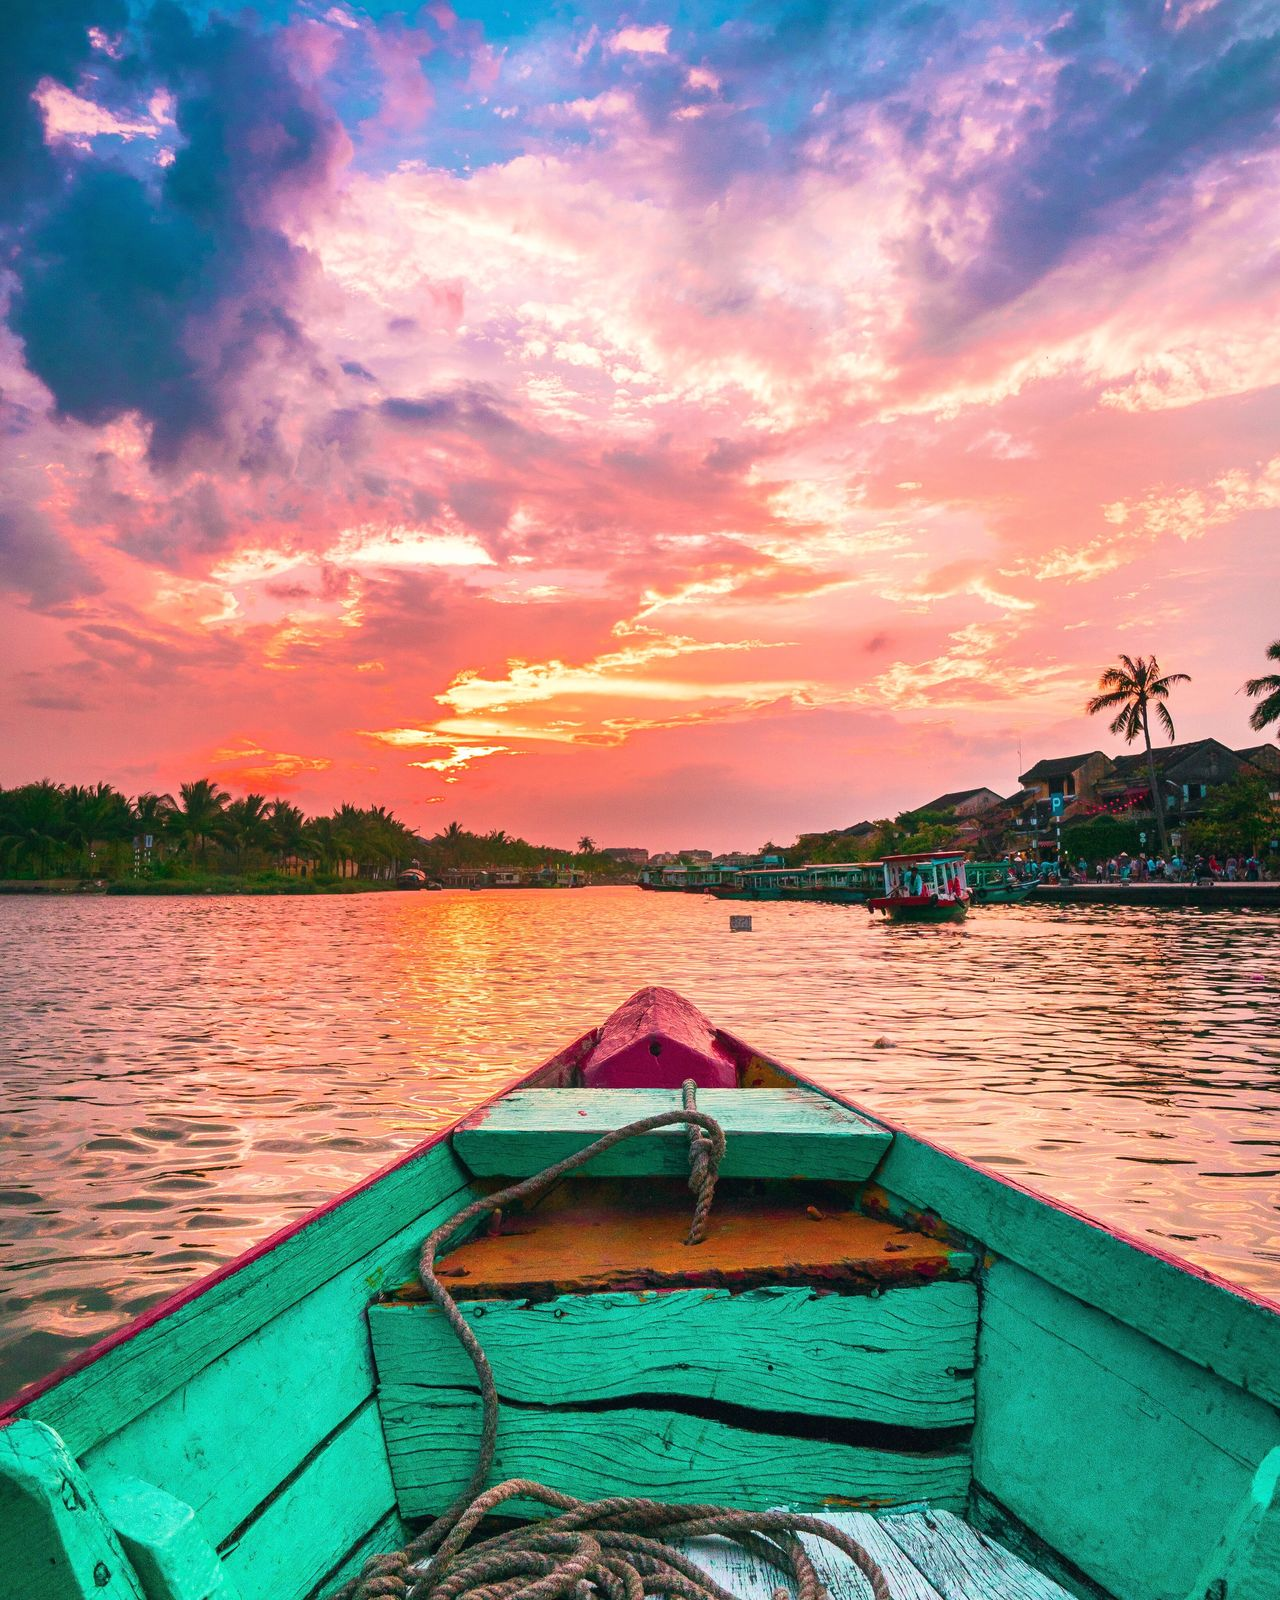 You were right Captain Dan. It was a beautiful sunset! Nautical Vessel Sky Beauty In Nature Nature Outdoors No People Sunset Lake Cloud - Sky Water Tree Day River Clouds Vietnam Boat